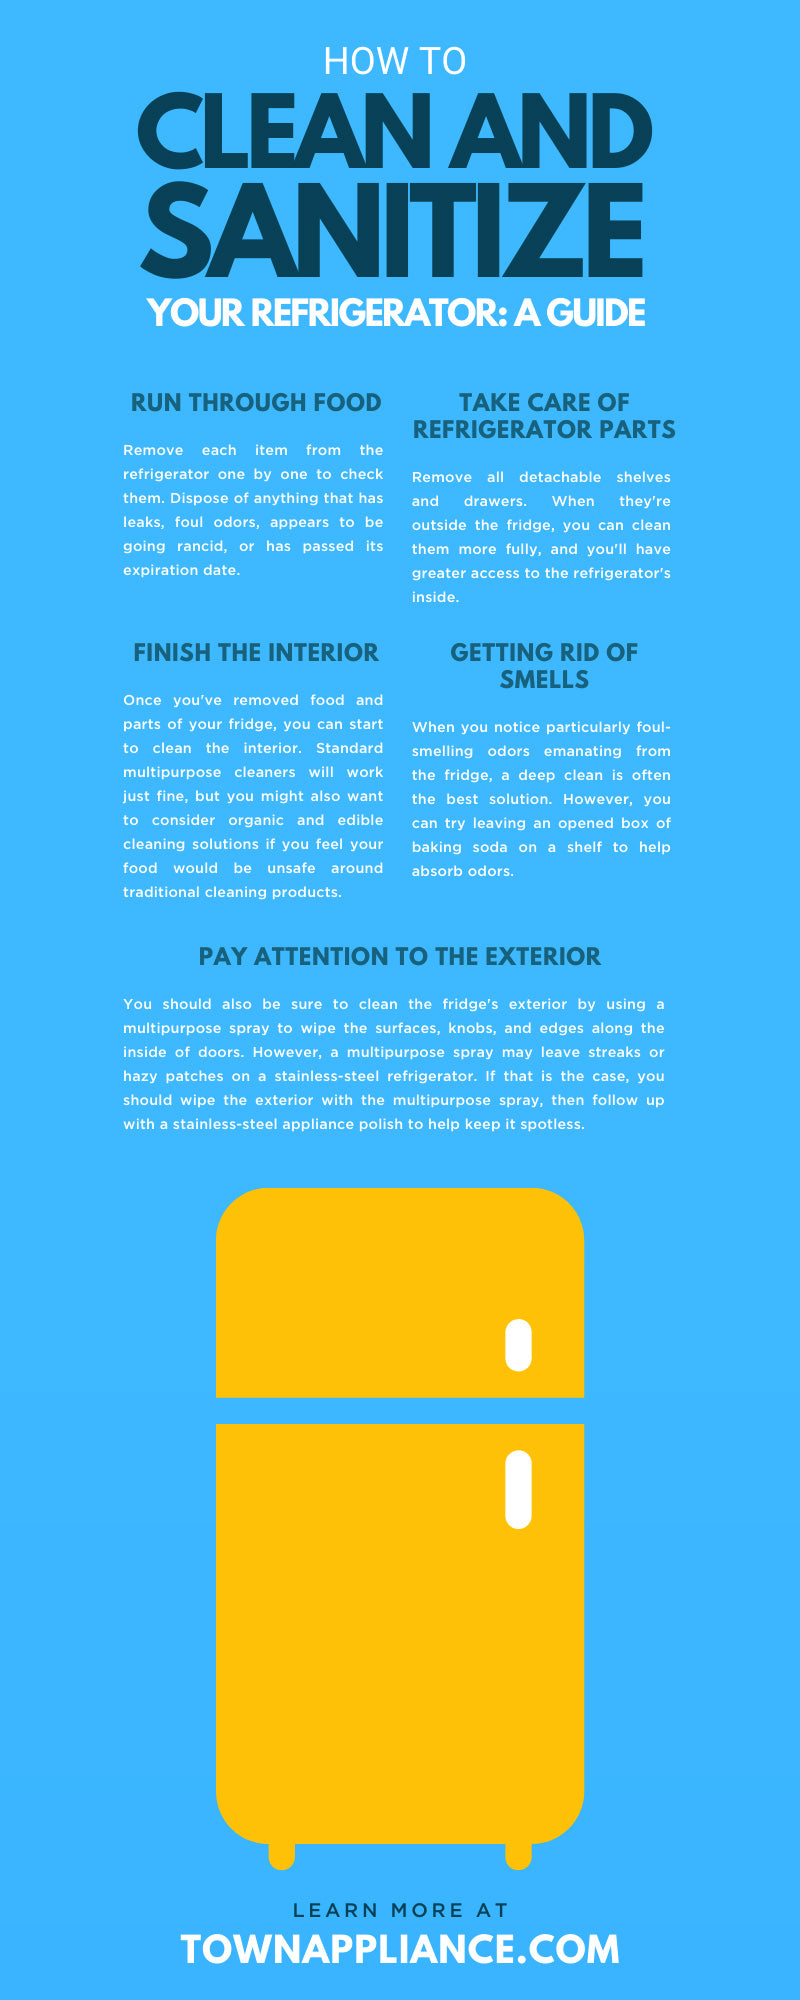 How To Clean and Sanitize Your Refrigerator: A Guide